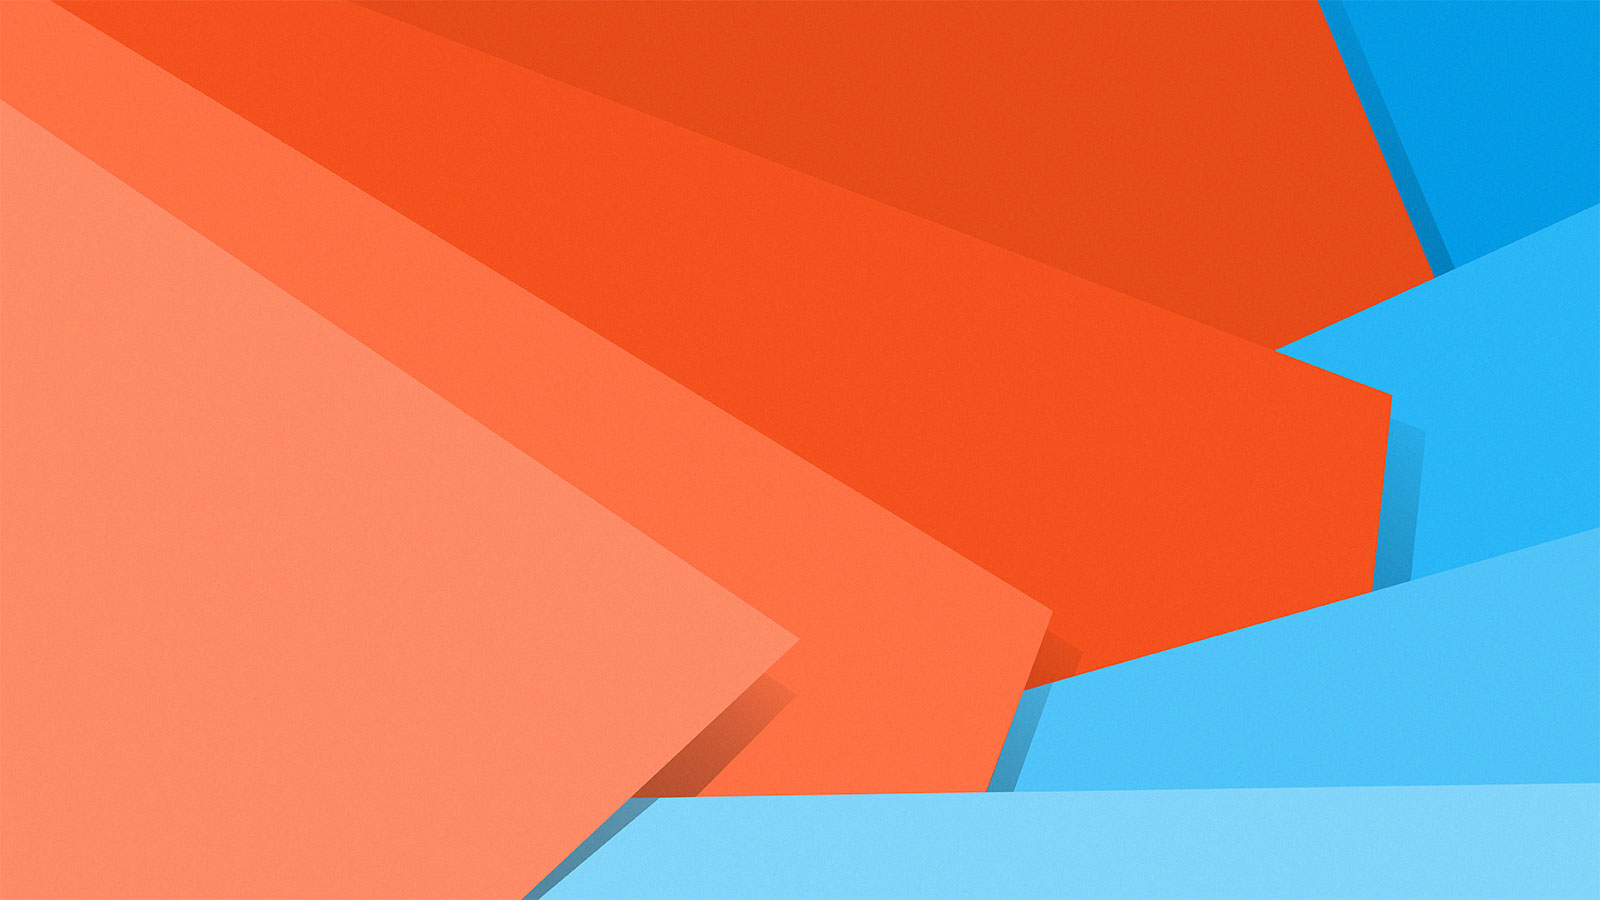 40-material-design-backgrounds